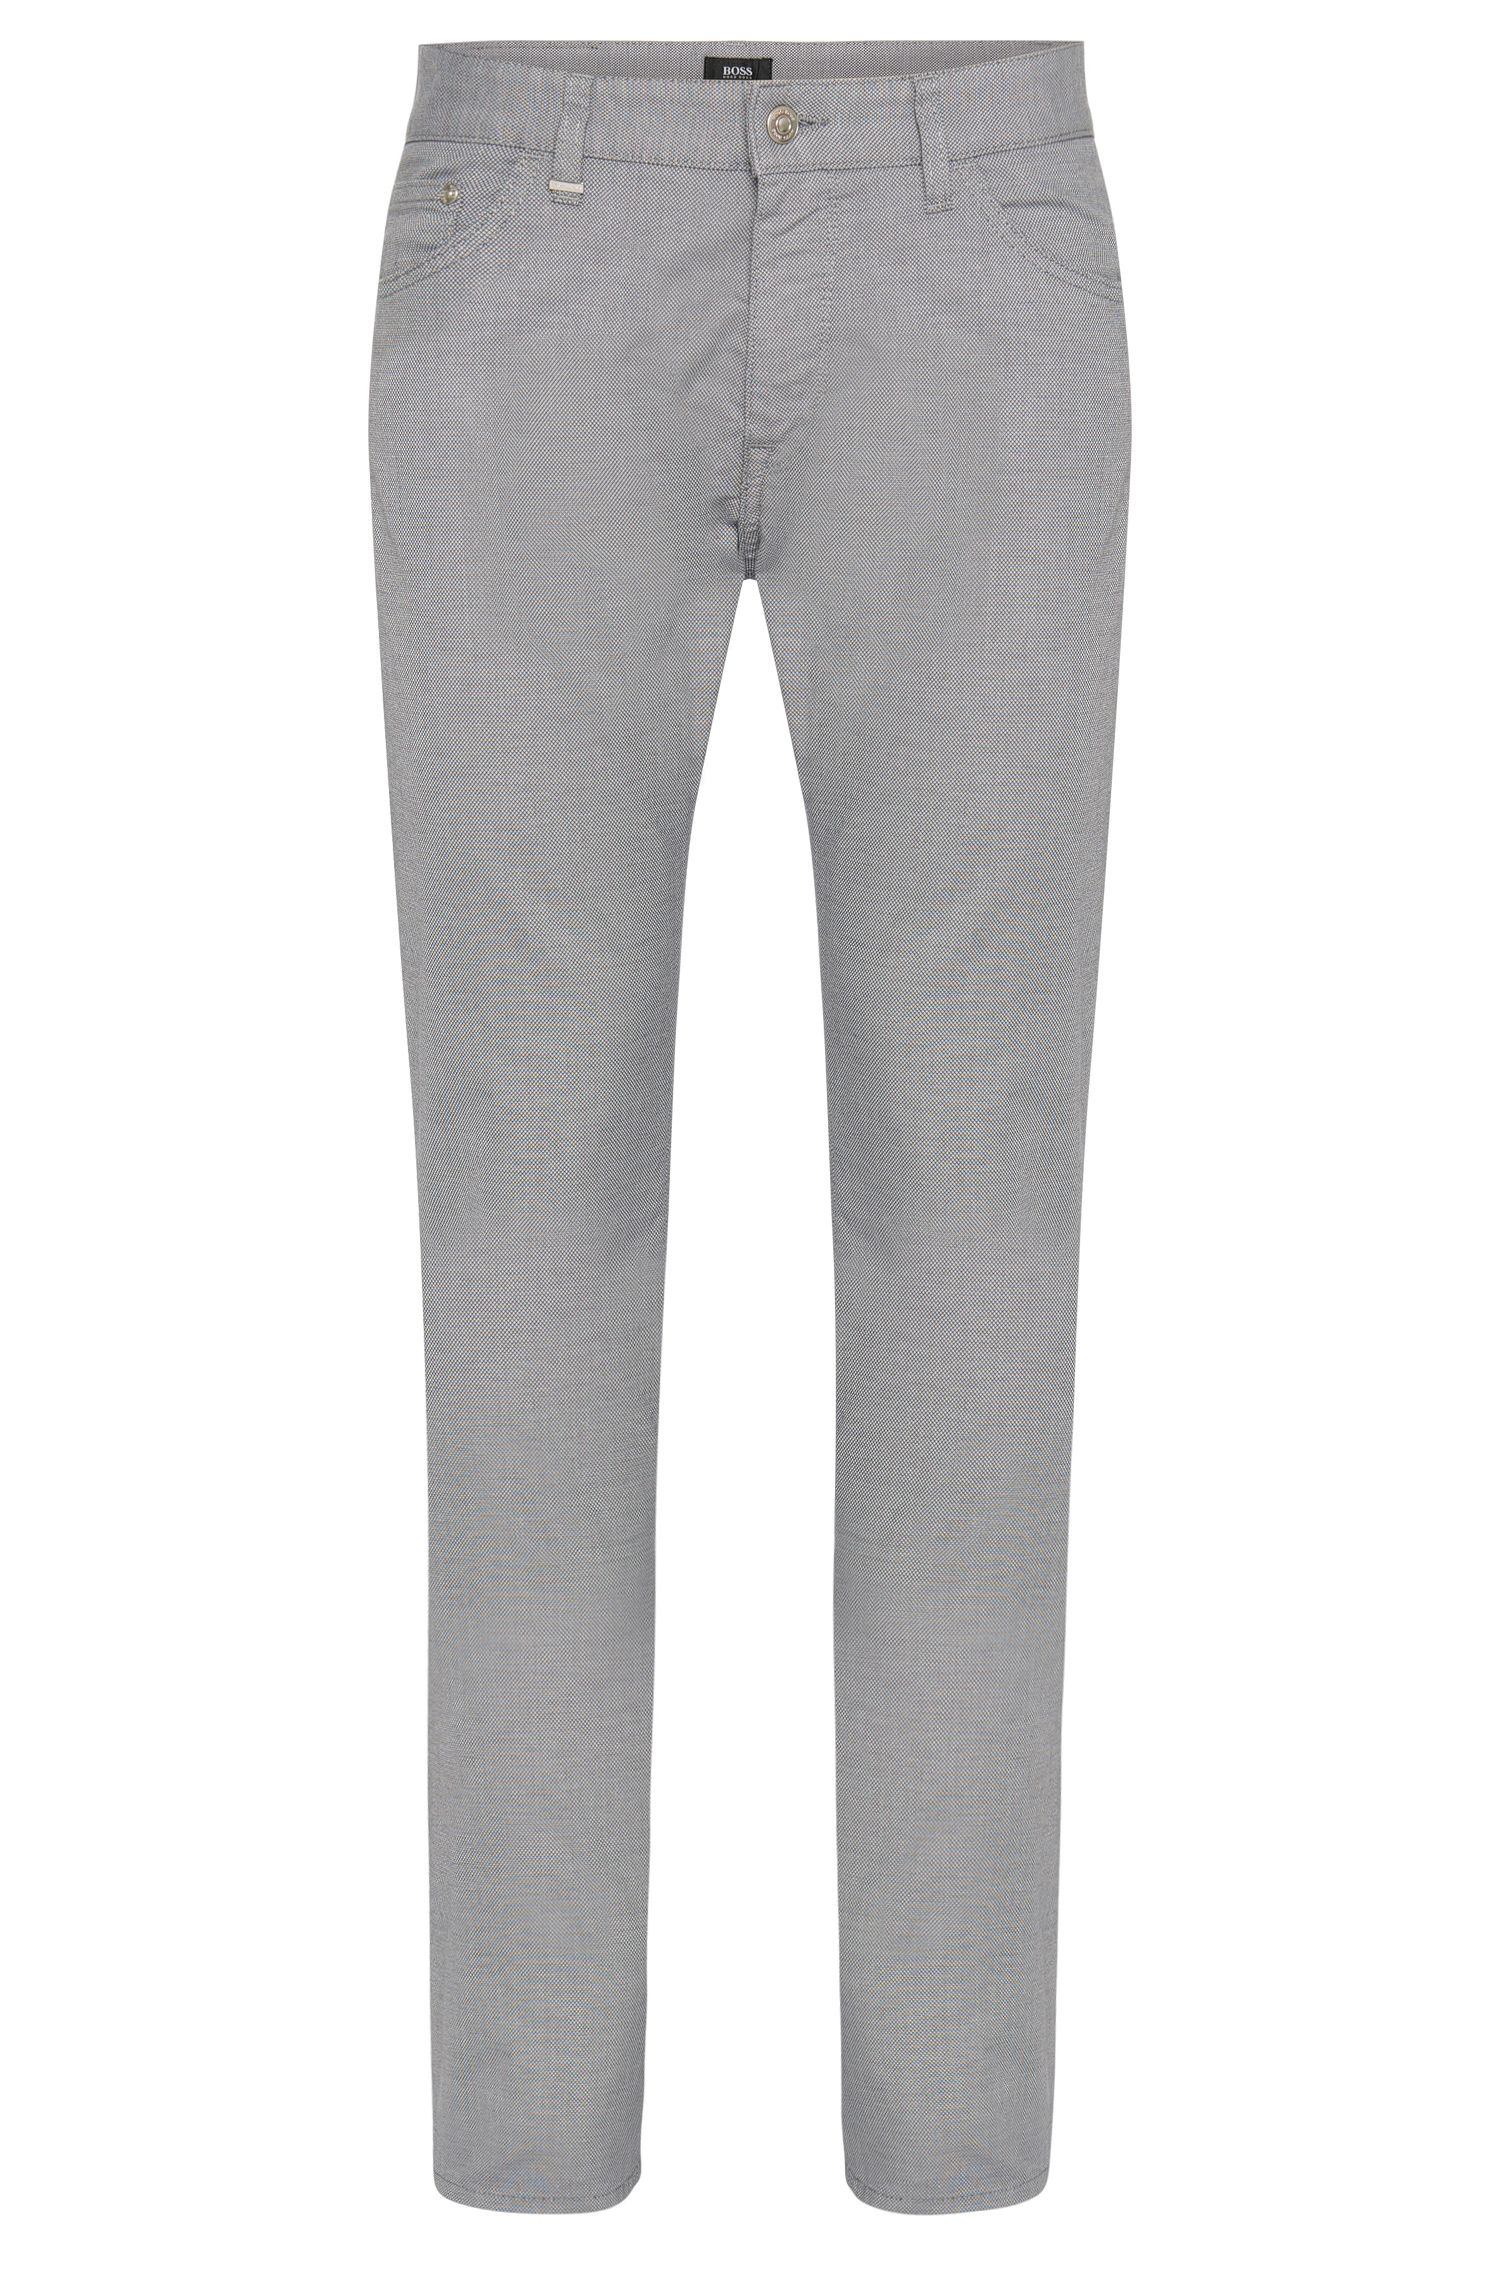 'Maine' | Regular Fit, Stretch Cotton Patterned Trousers